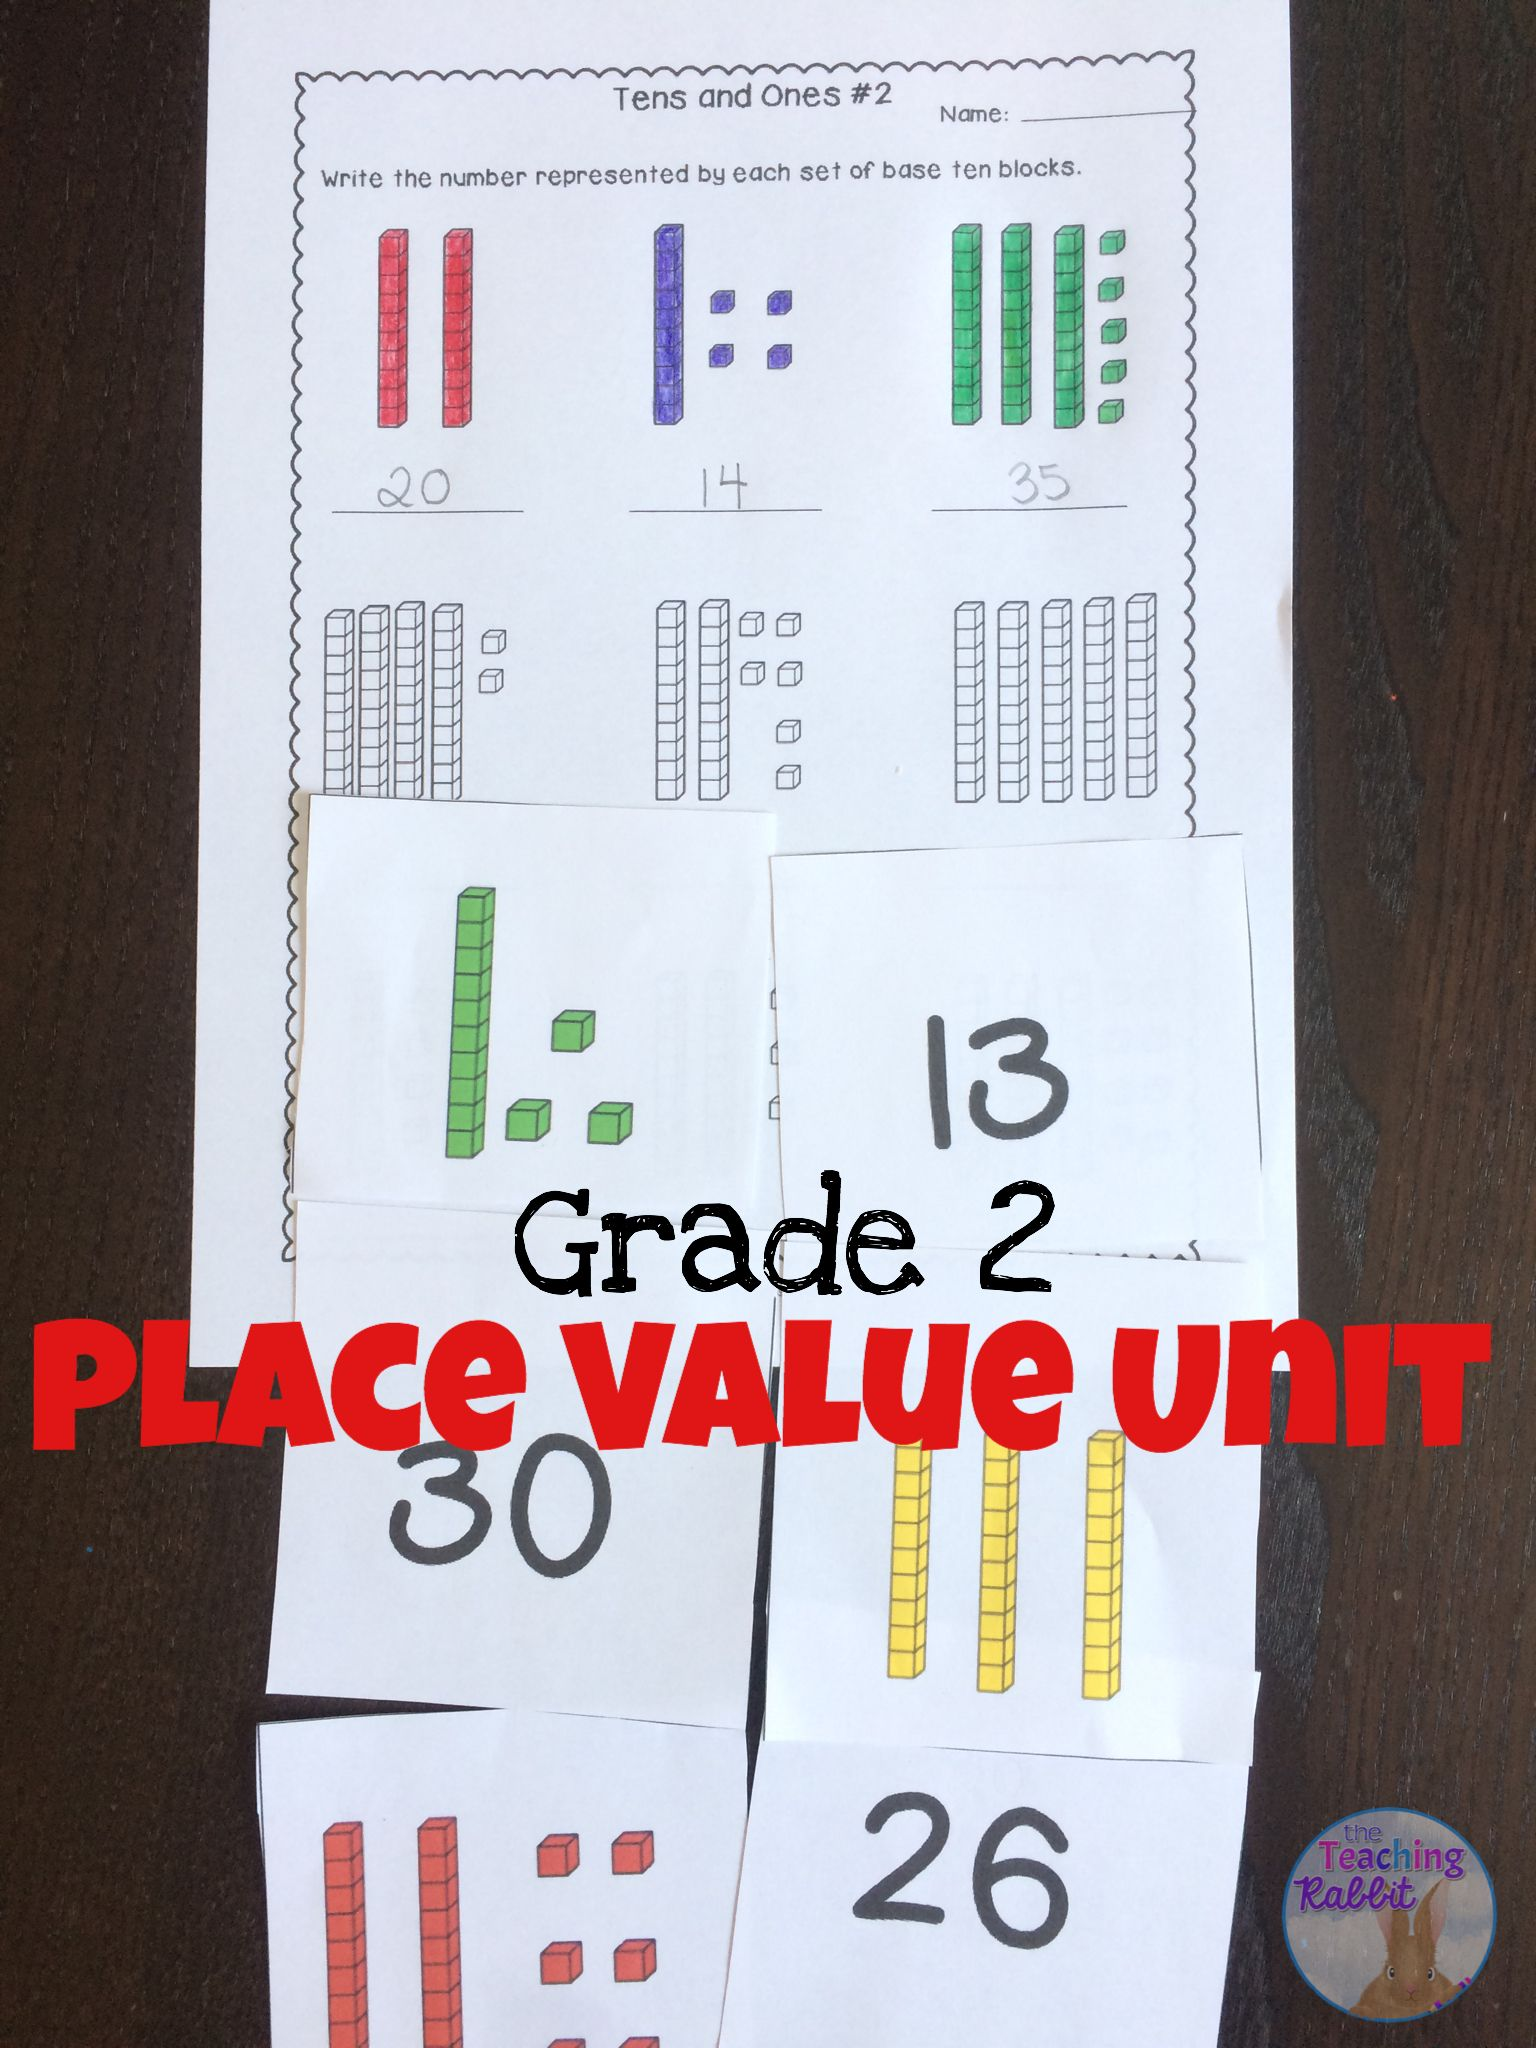 Place Value Unit For Grade 2 Ontario Curriculum